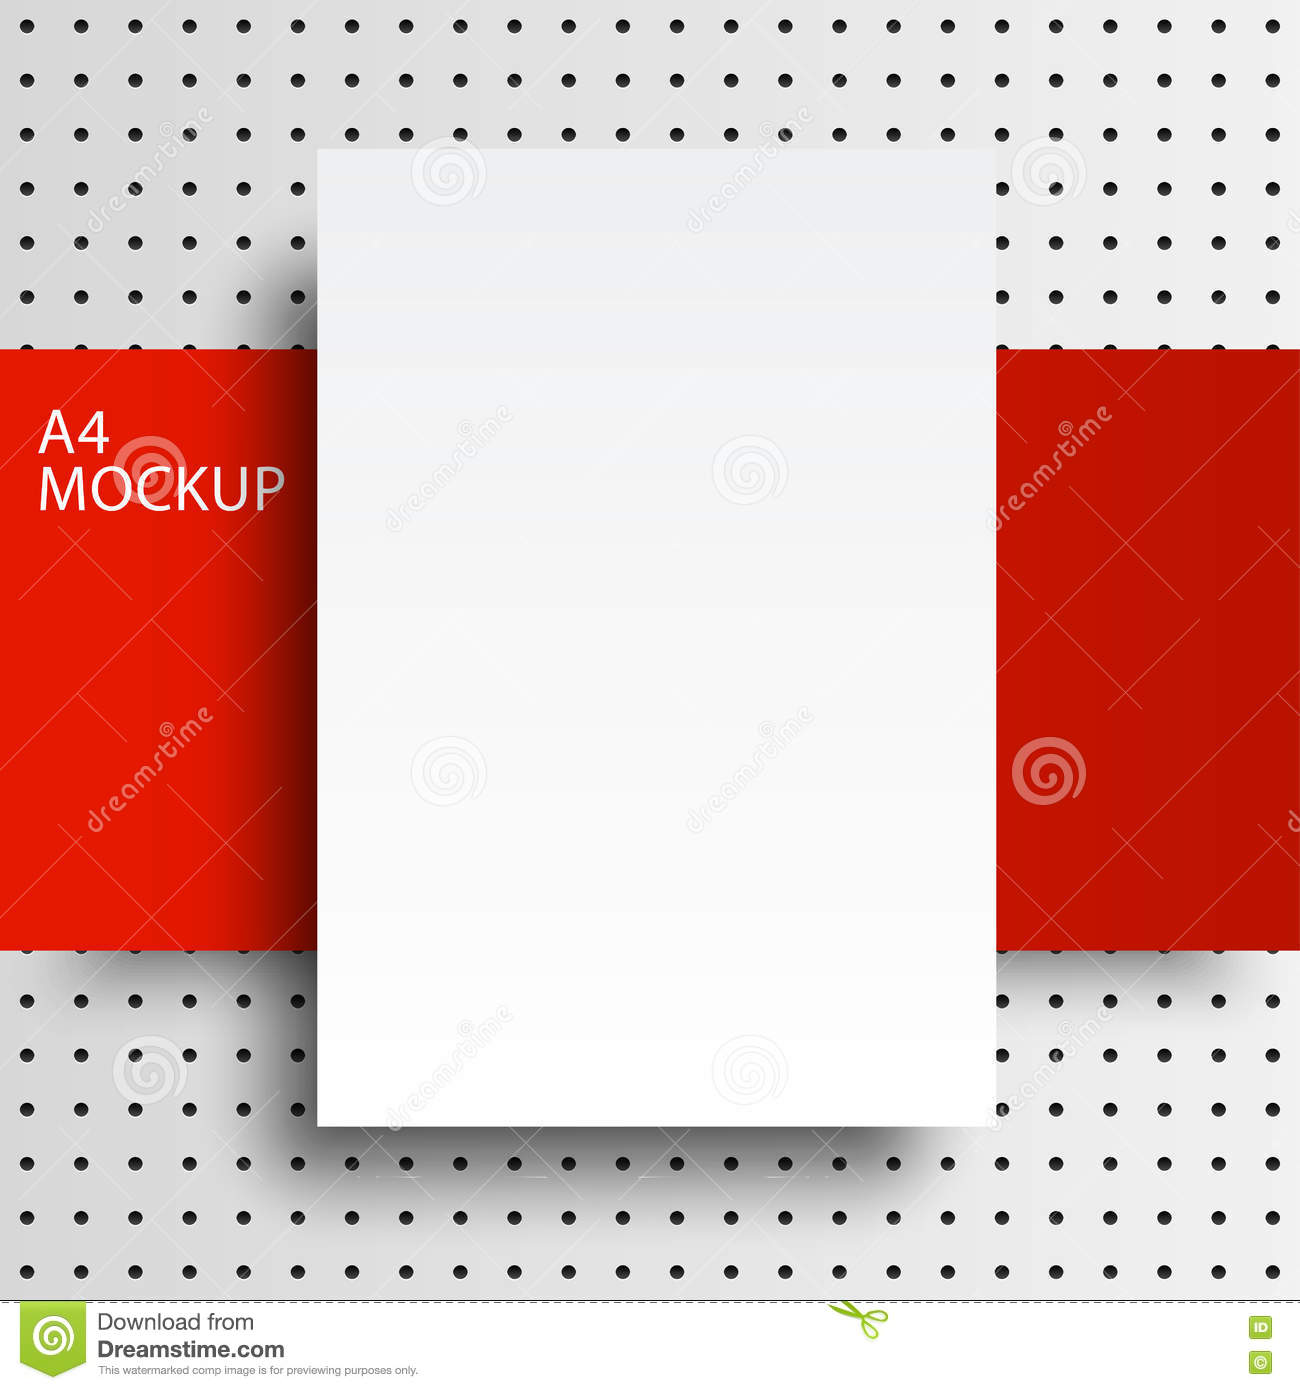 Paper Mockup A4 Dot Red Line2-01 Stock Vector - Illustration of